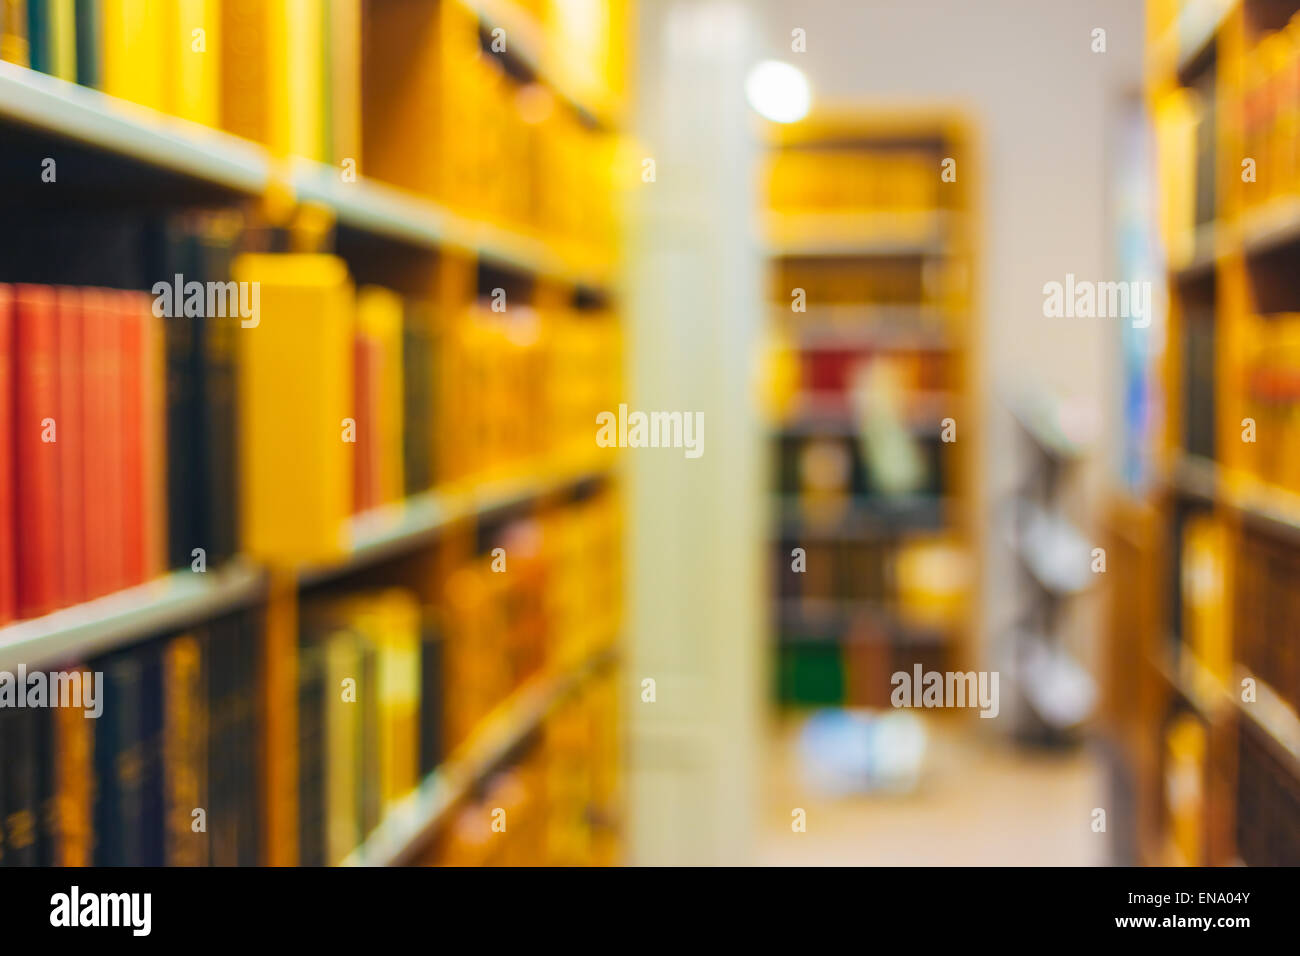 Unfocused Blurred Background Of Old Vintage Books On A Wooden Shelfs In Library. Education Concept - Stock Image